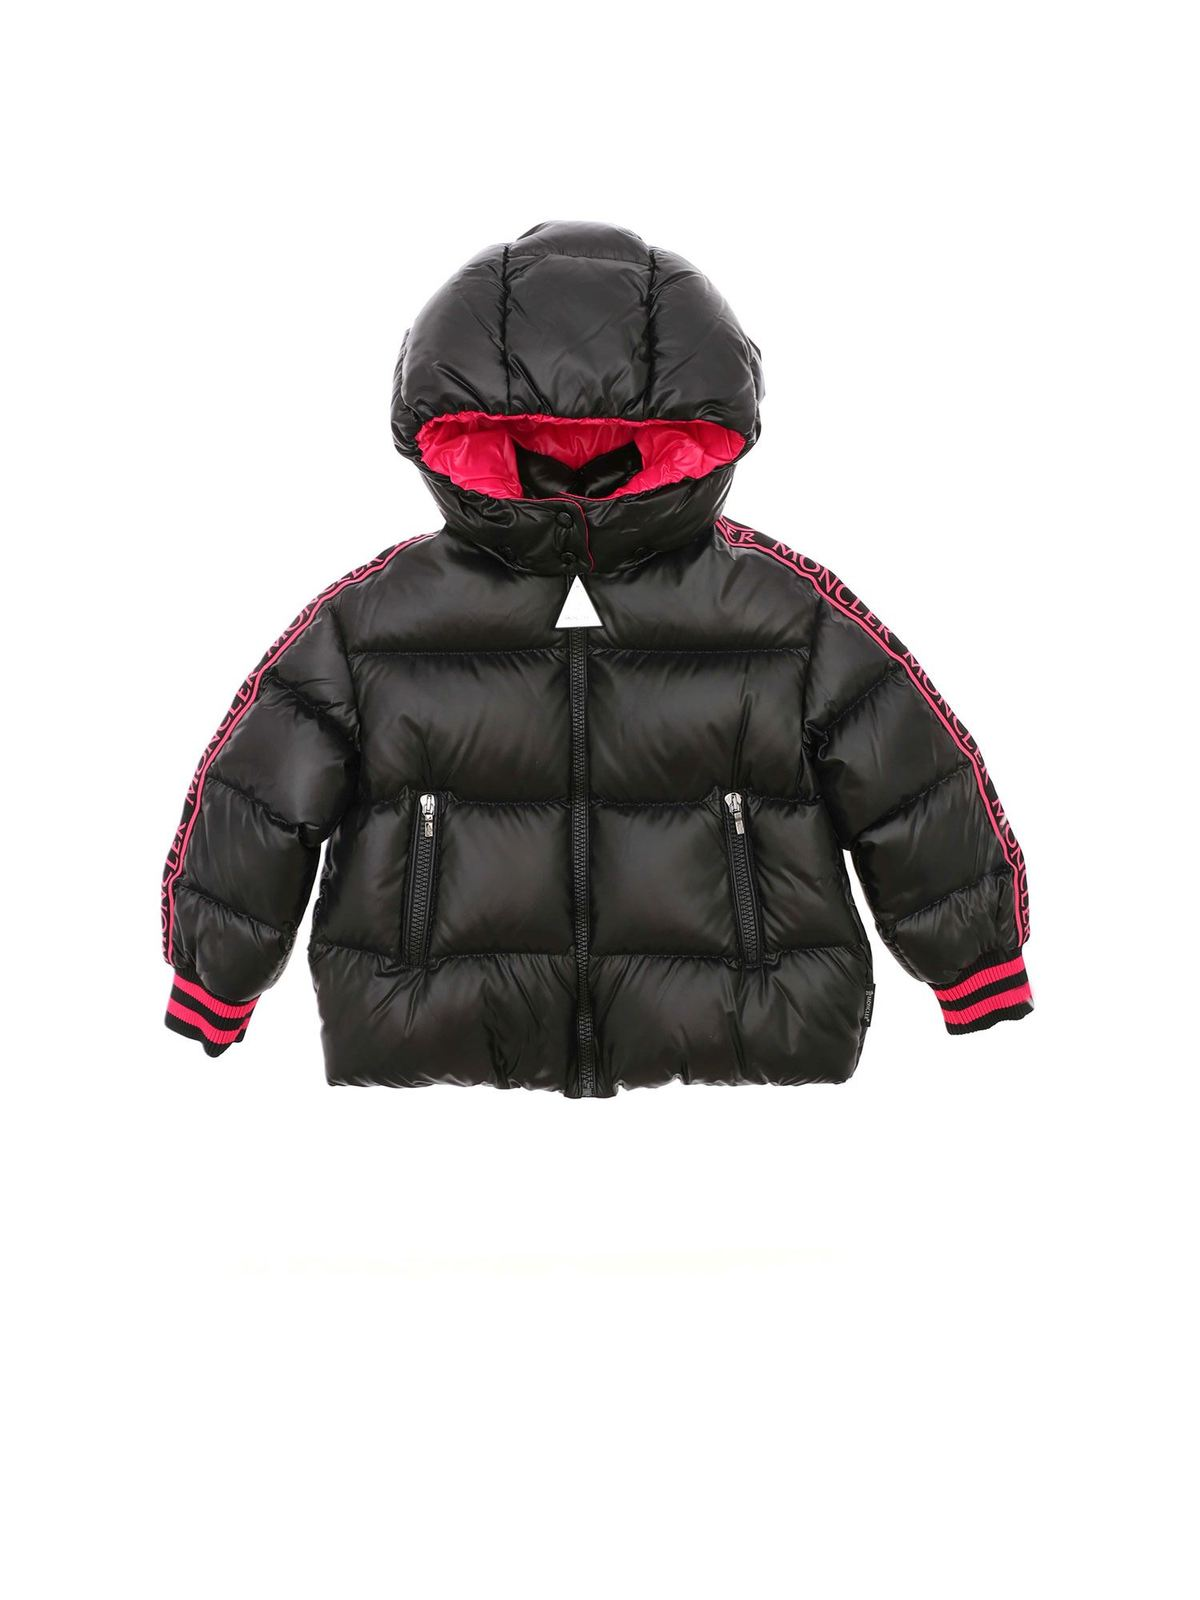 MONCLER JR AZZURRA BLACK DOWN JACKET WITH BRANDED BANDS